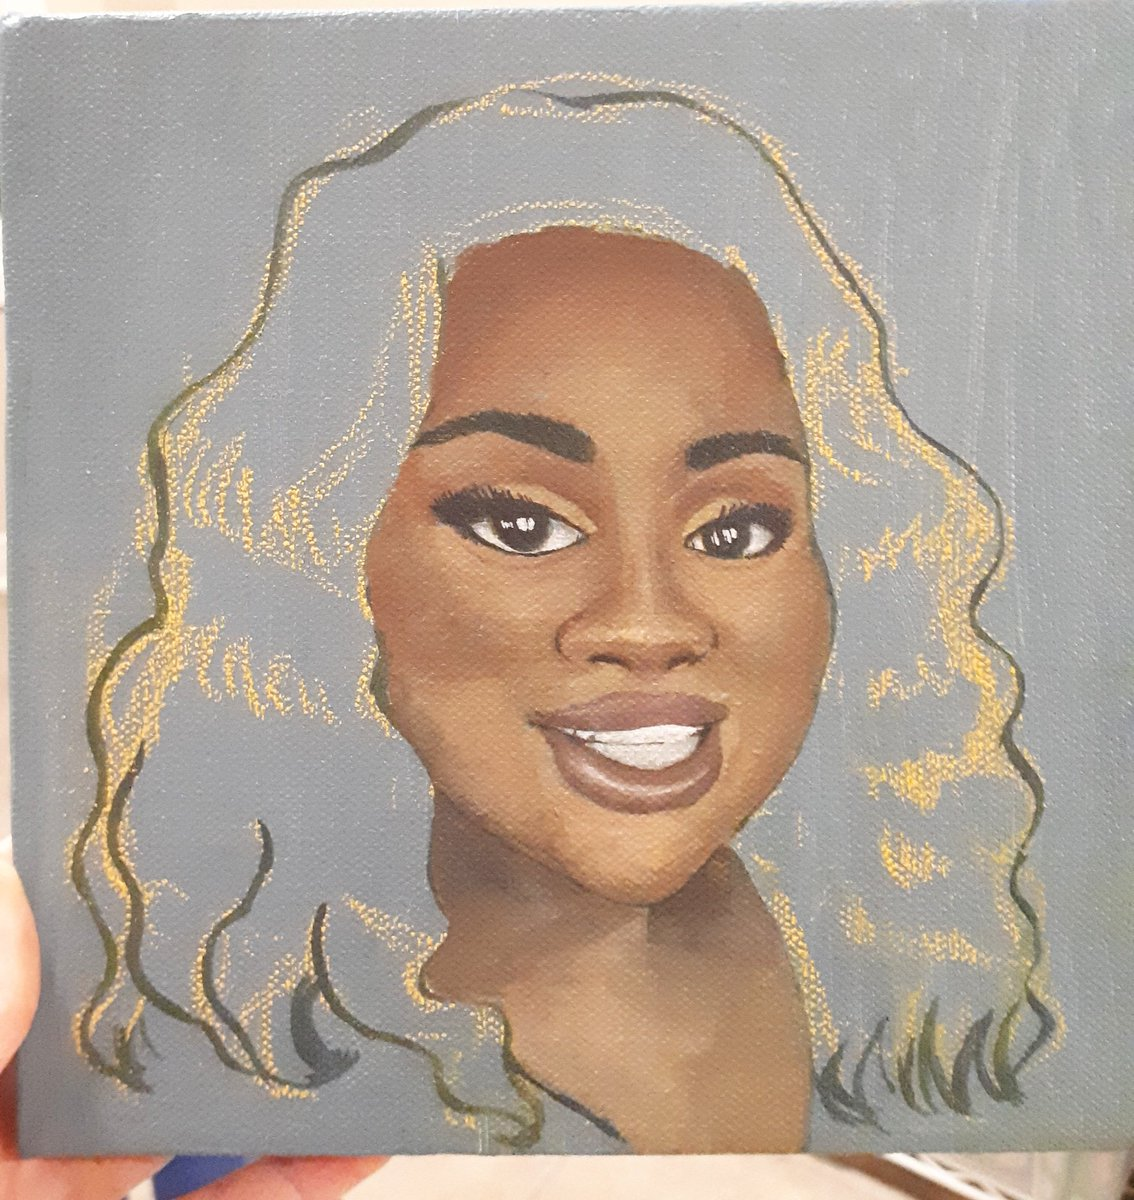 Progress on a portrait. I know I'm late, and there's still more to do but happy birthday Breonna ❤  The death of this woman in particular really struck me. She never made it to her birthday. #breonnataylor #happybirthdaybreonnataylor #blacklivesmatter